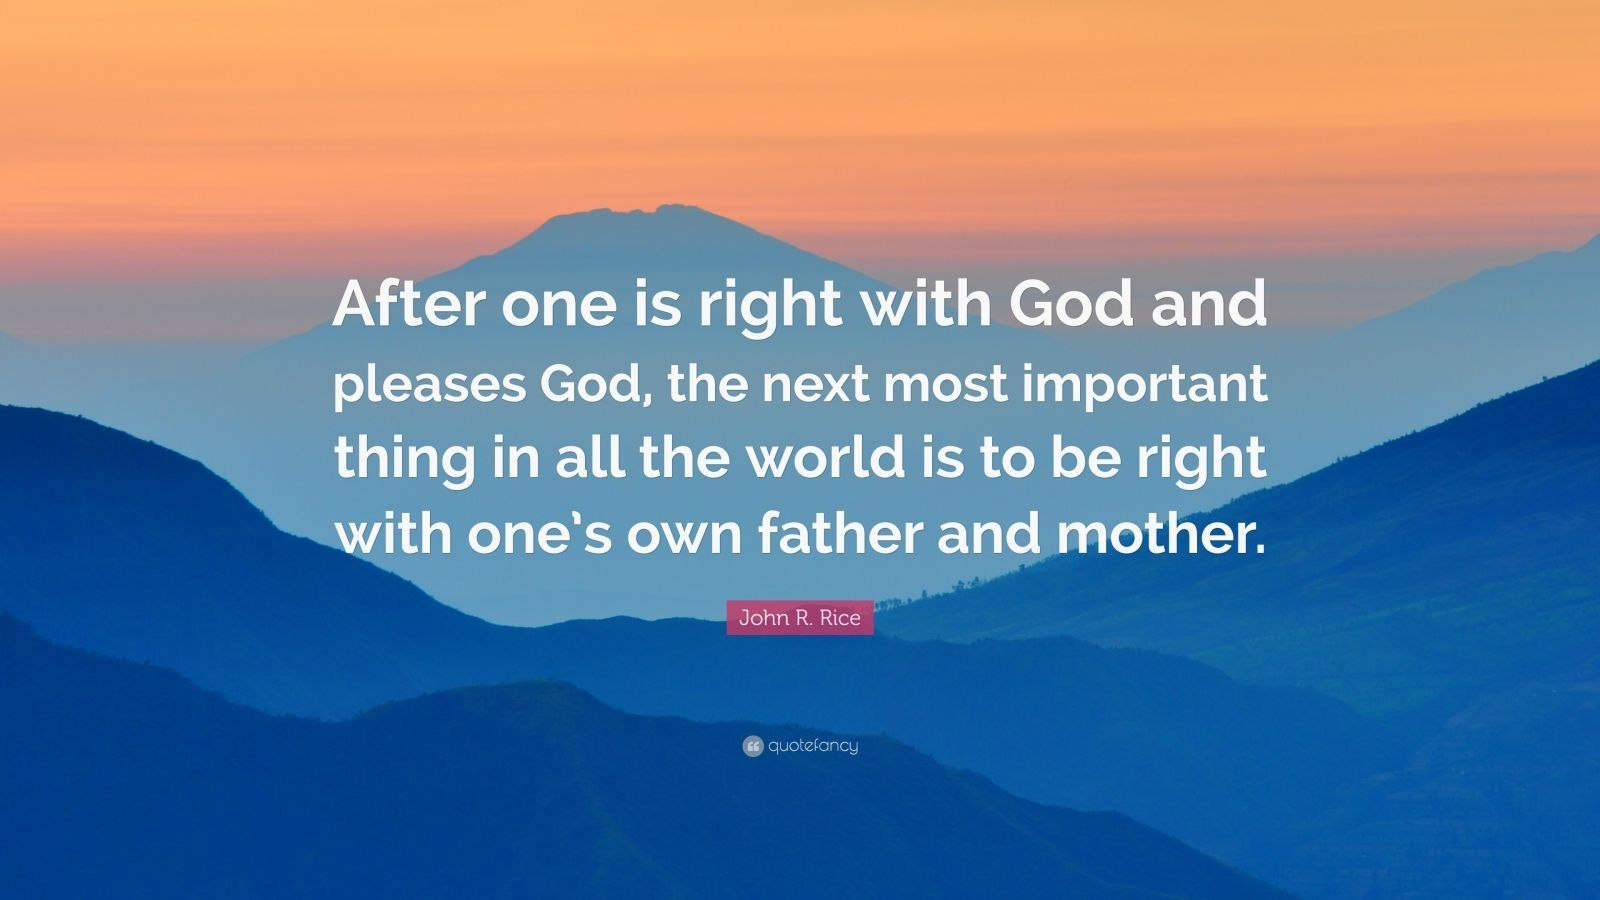 """John R. Rice Quote: """"After one is right with God and pleases God, the next most important thing in all the world is to be right with one's own father and mother."""""""